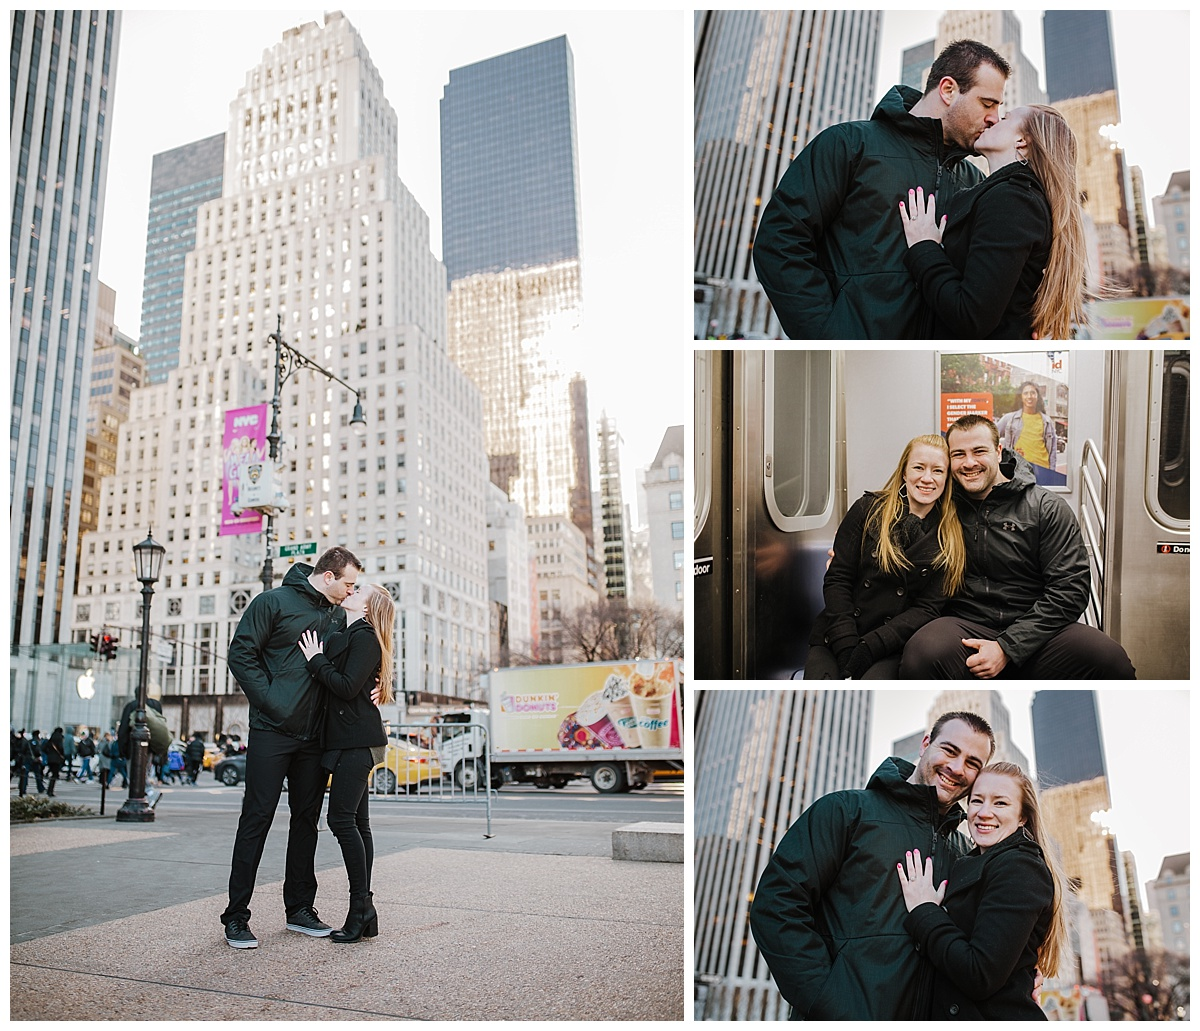 Manhattan - NYC Destination Engagement Session - Sara & Tim